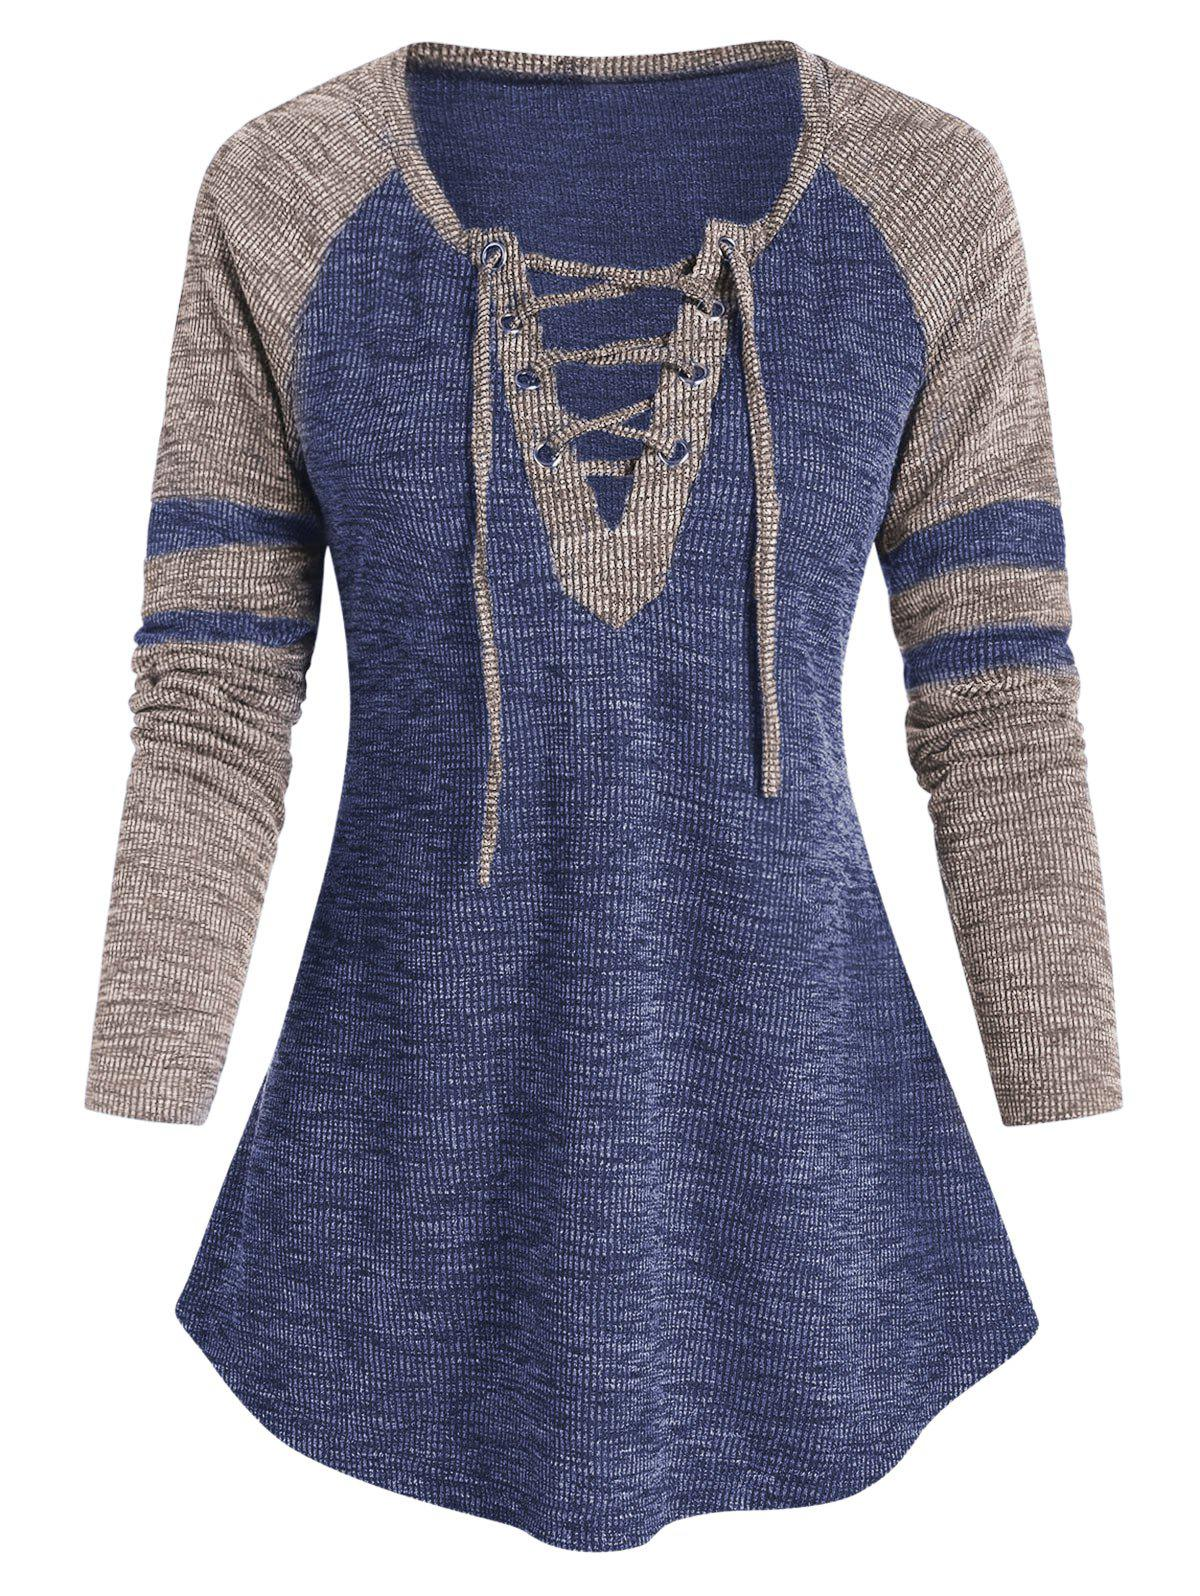 Raglan Sleeve Lace-up Contrast Ribbed T-shirt - DARK SLATE BLUE 3XL